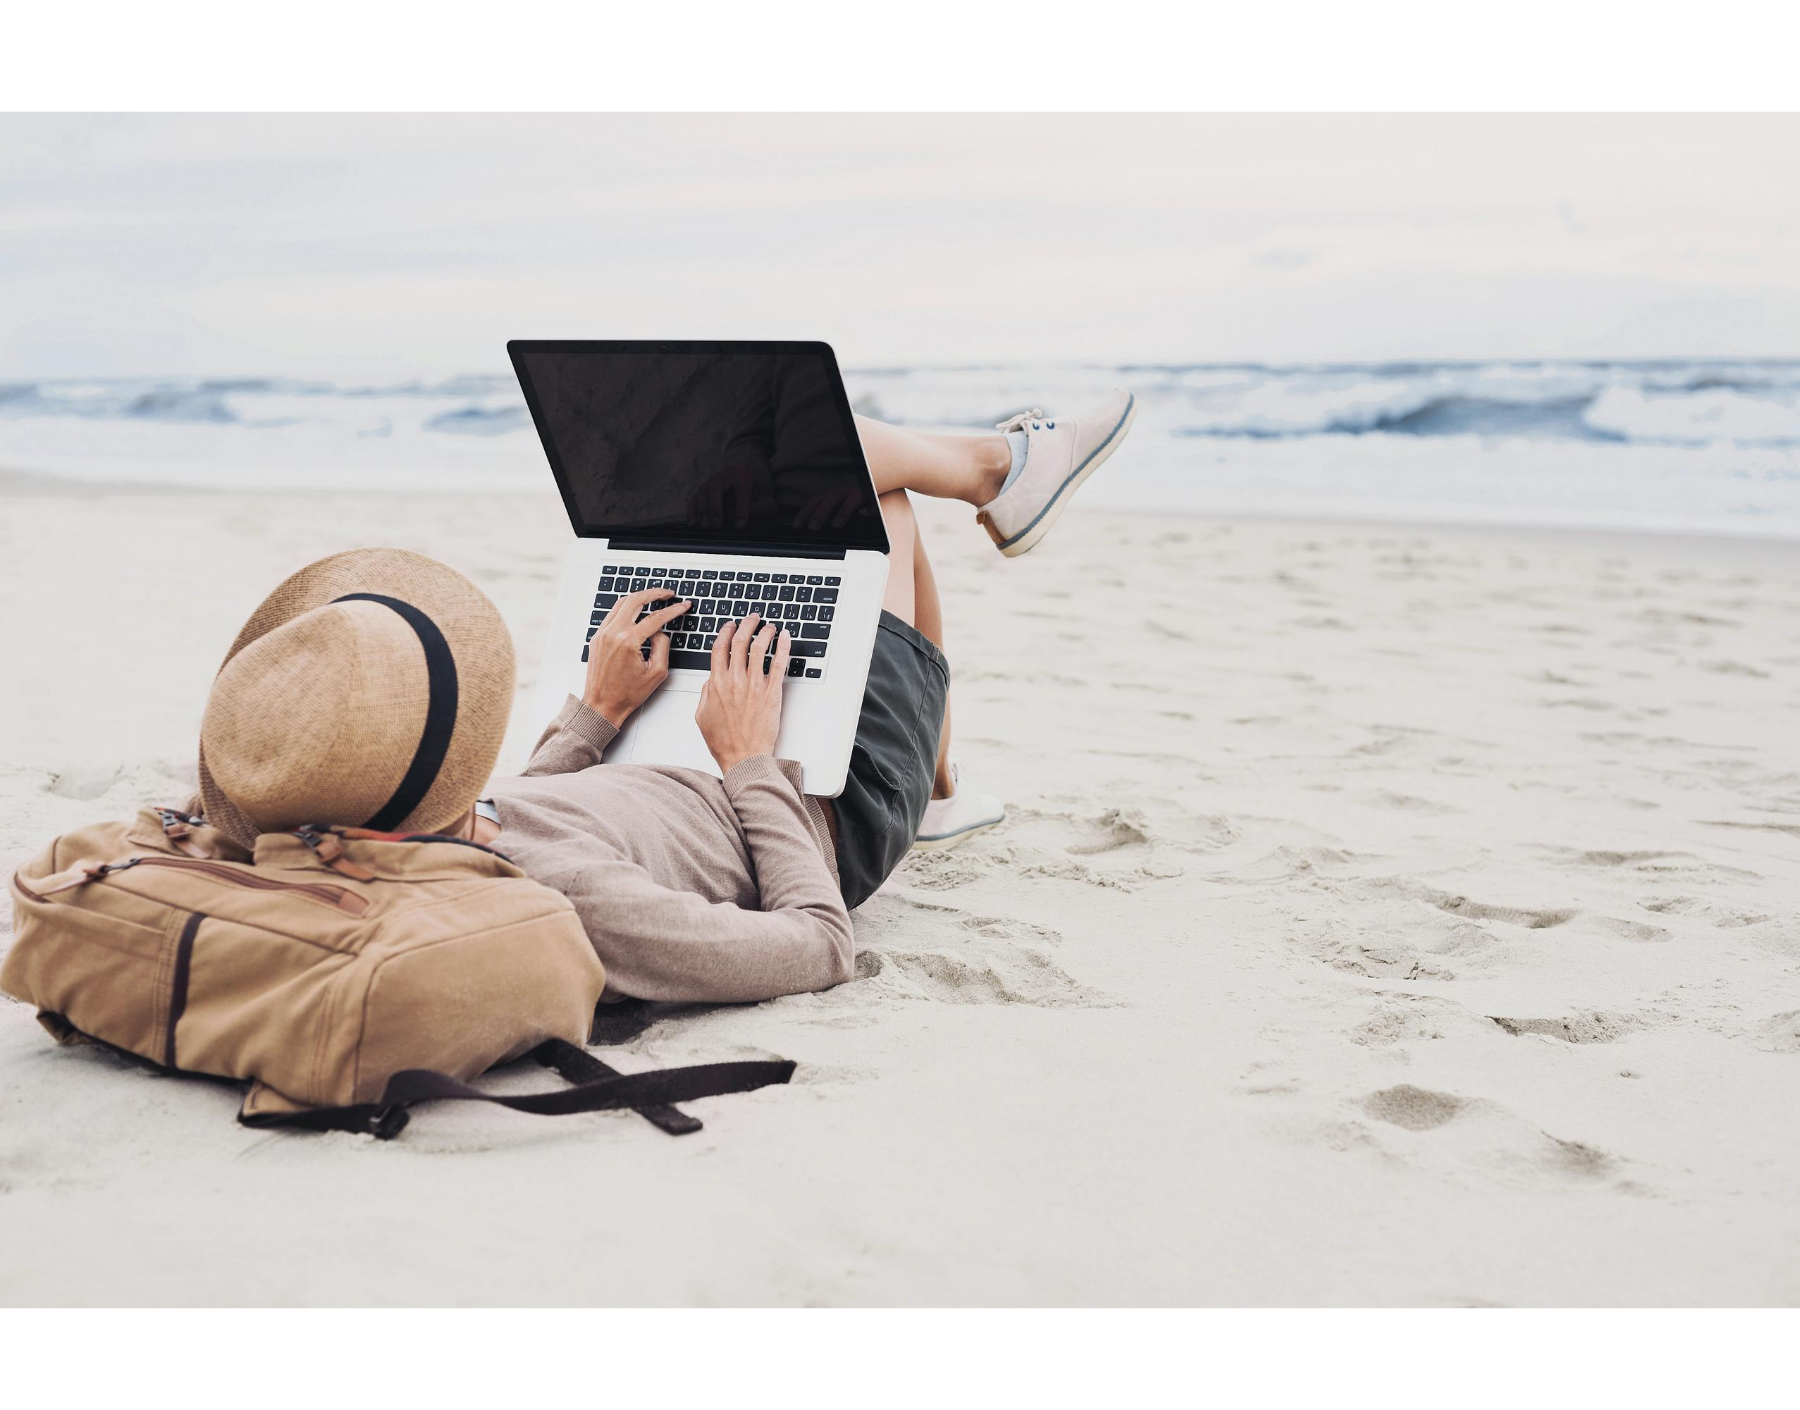 person working on laptop on beach